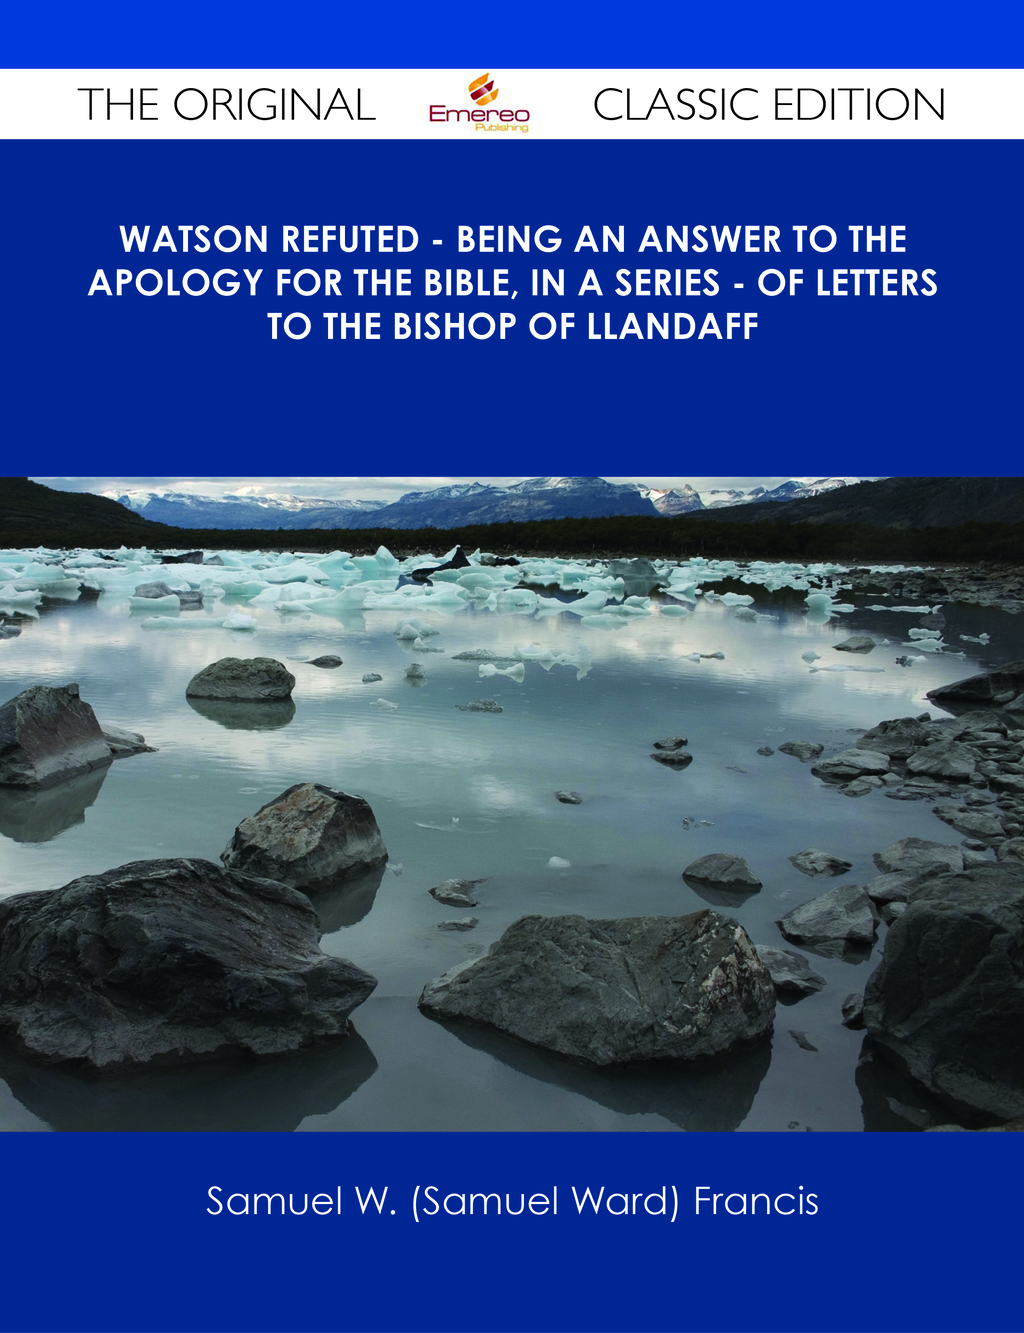 Watson Refuted - Being an Answer to The Apology for the Bible, in a Series - of Letters to the Bishop Of Llandaff - The Original Classic Edition